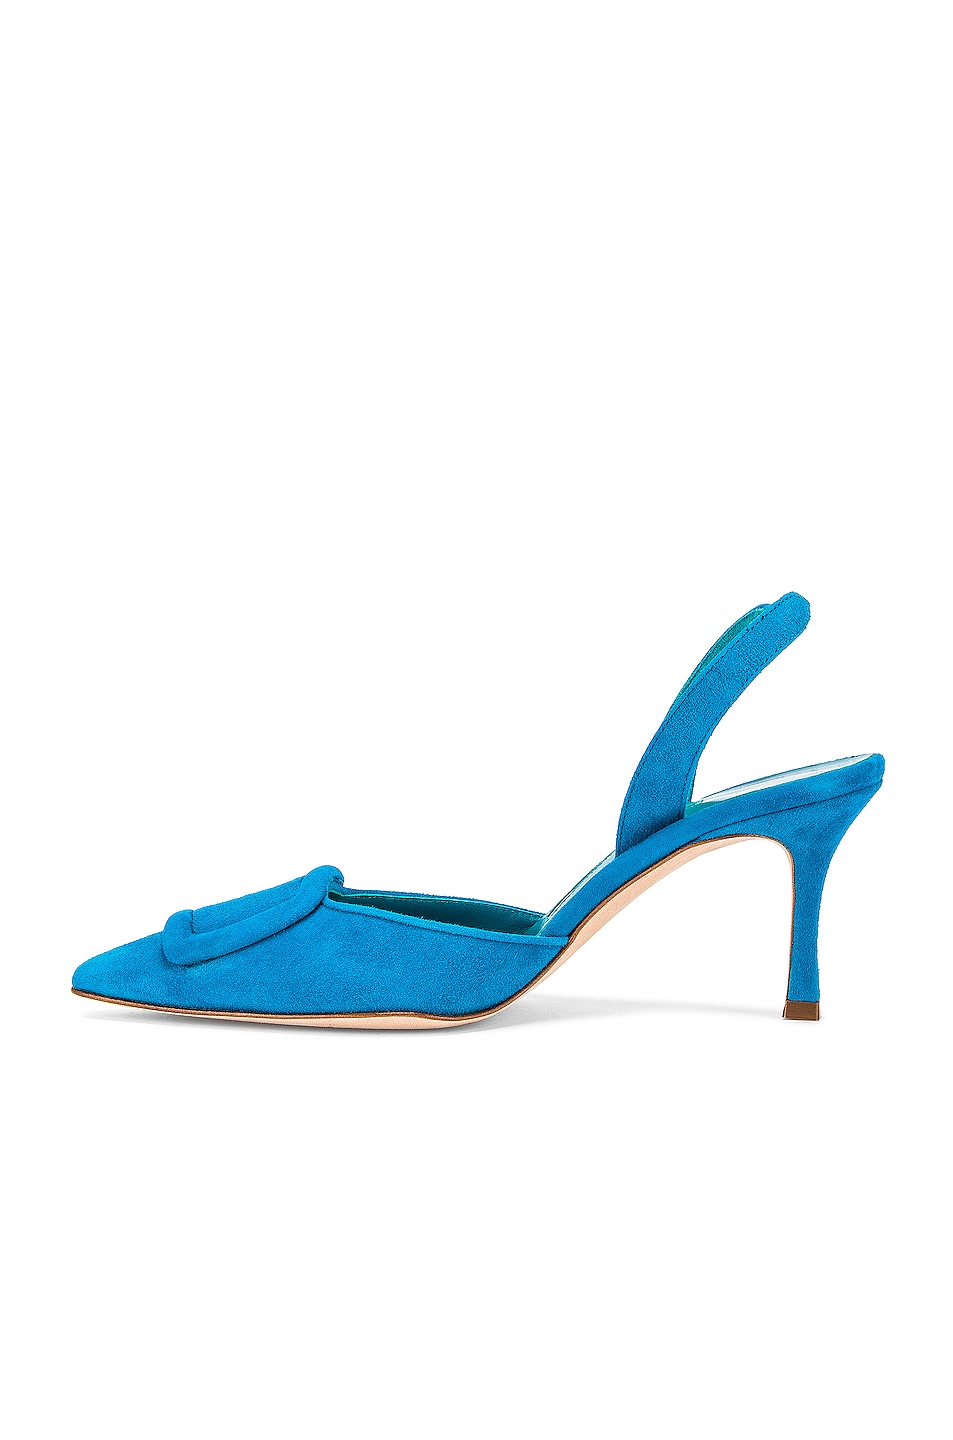 Image 5 of Manolo Blahnik Suede May 70 Slingback in Asiago Turquoise